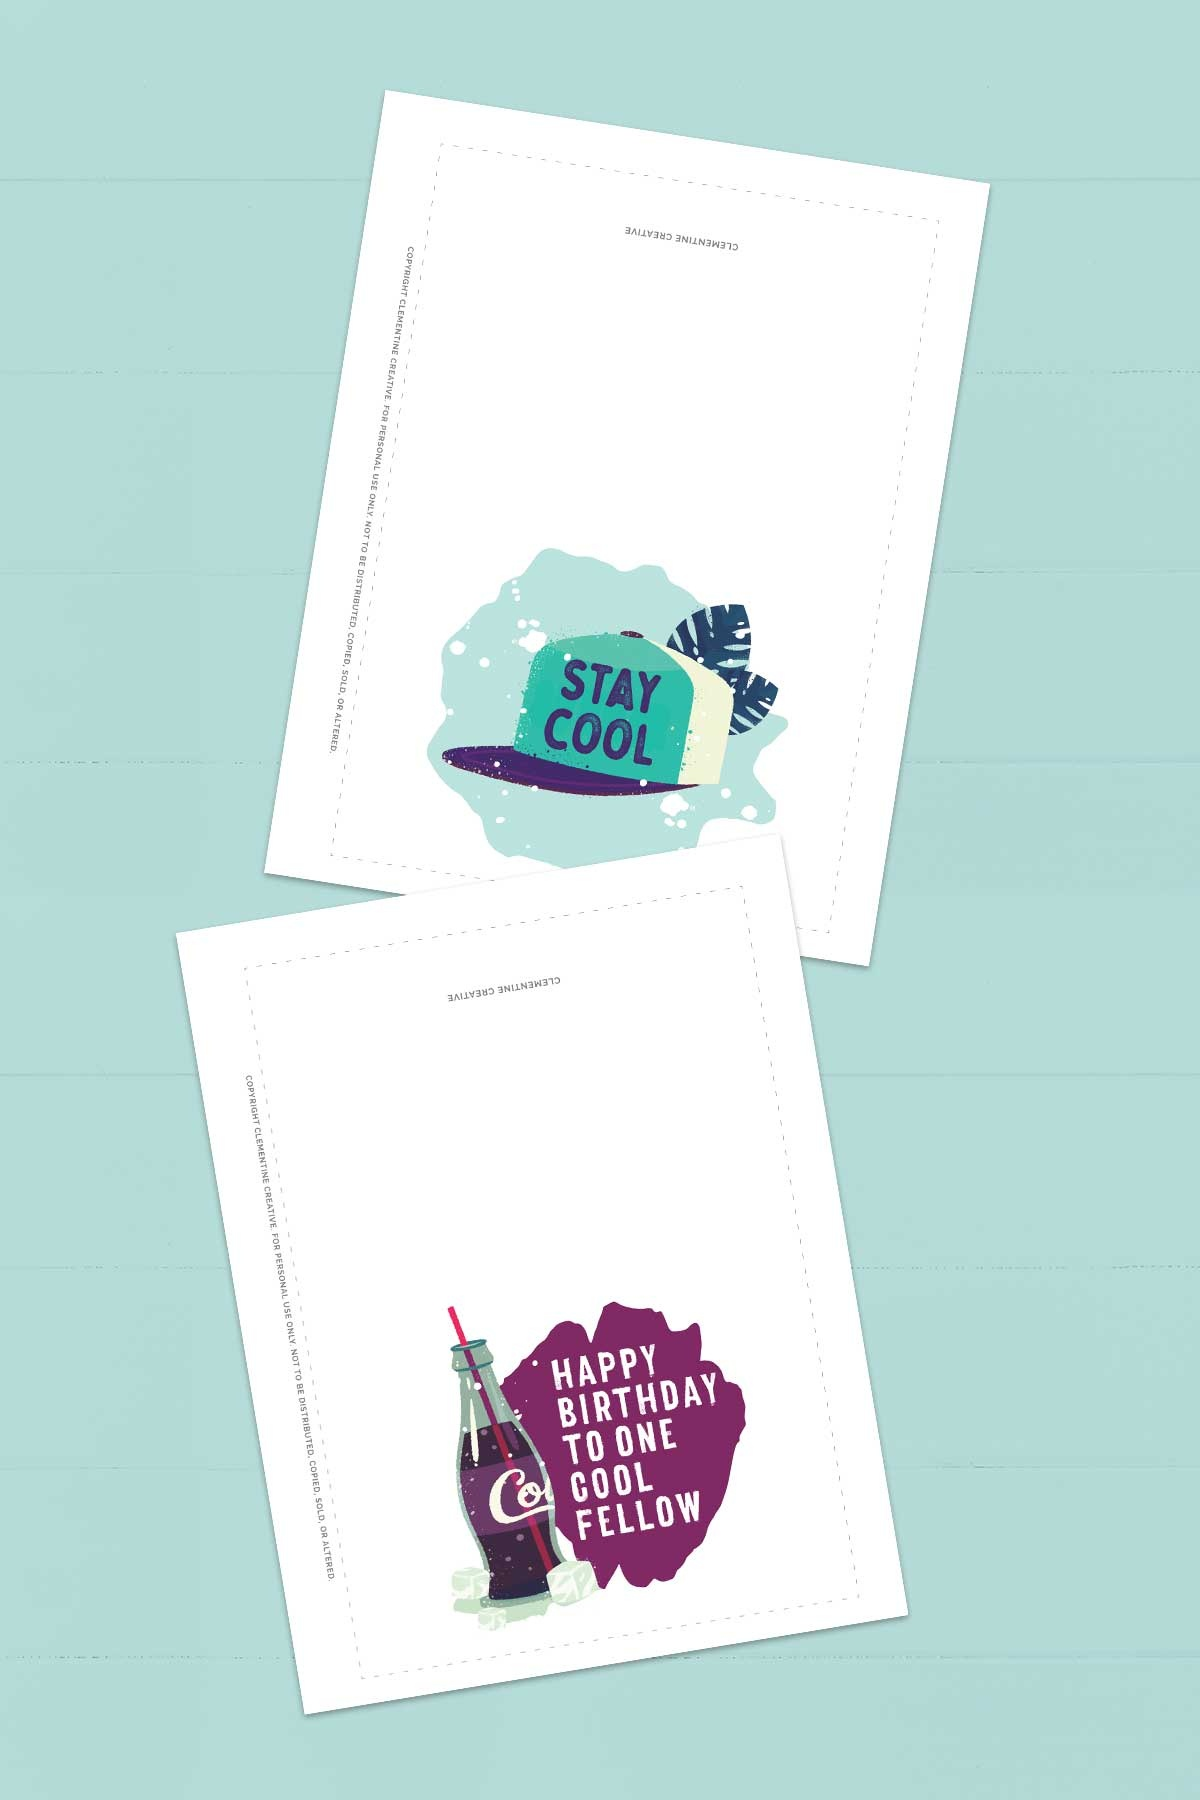 Free Printable Birthday Cards For Him   Stay Cool - Free Printable Birthday Cards For Him